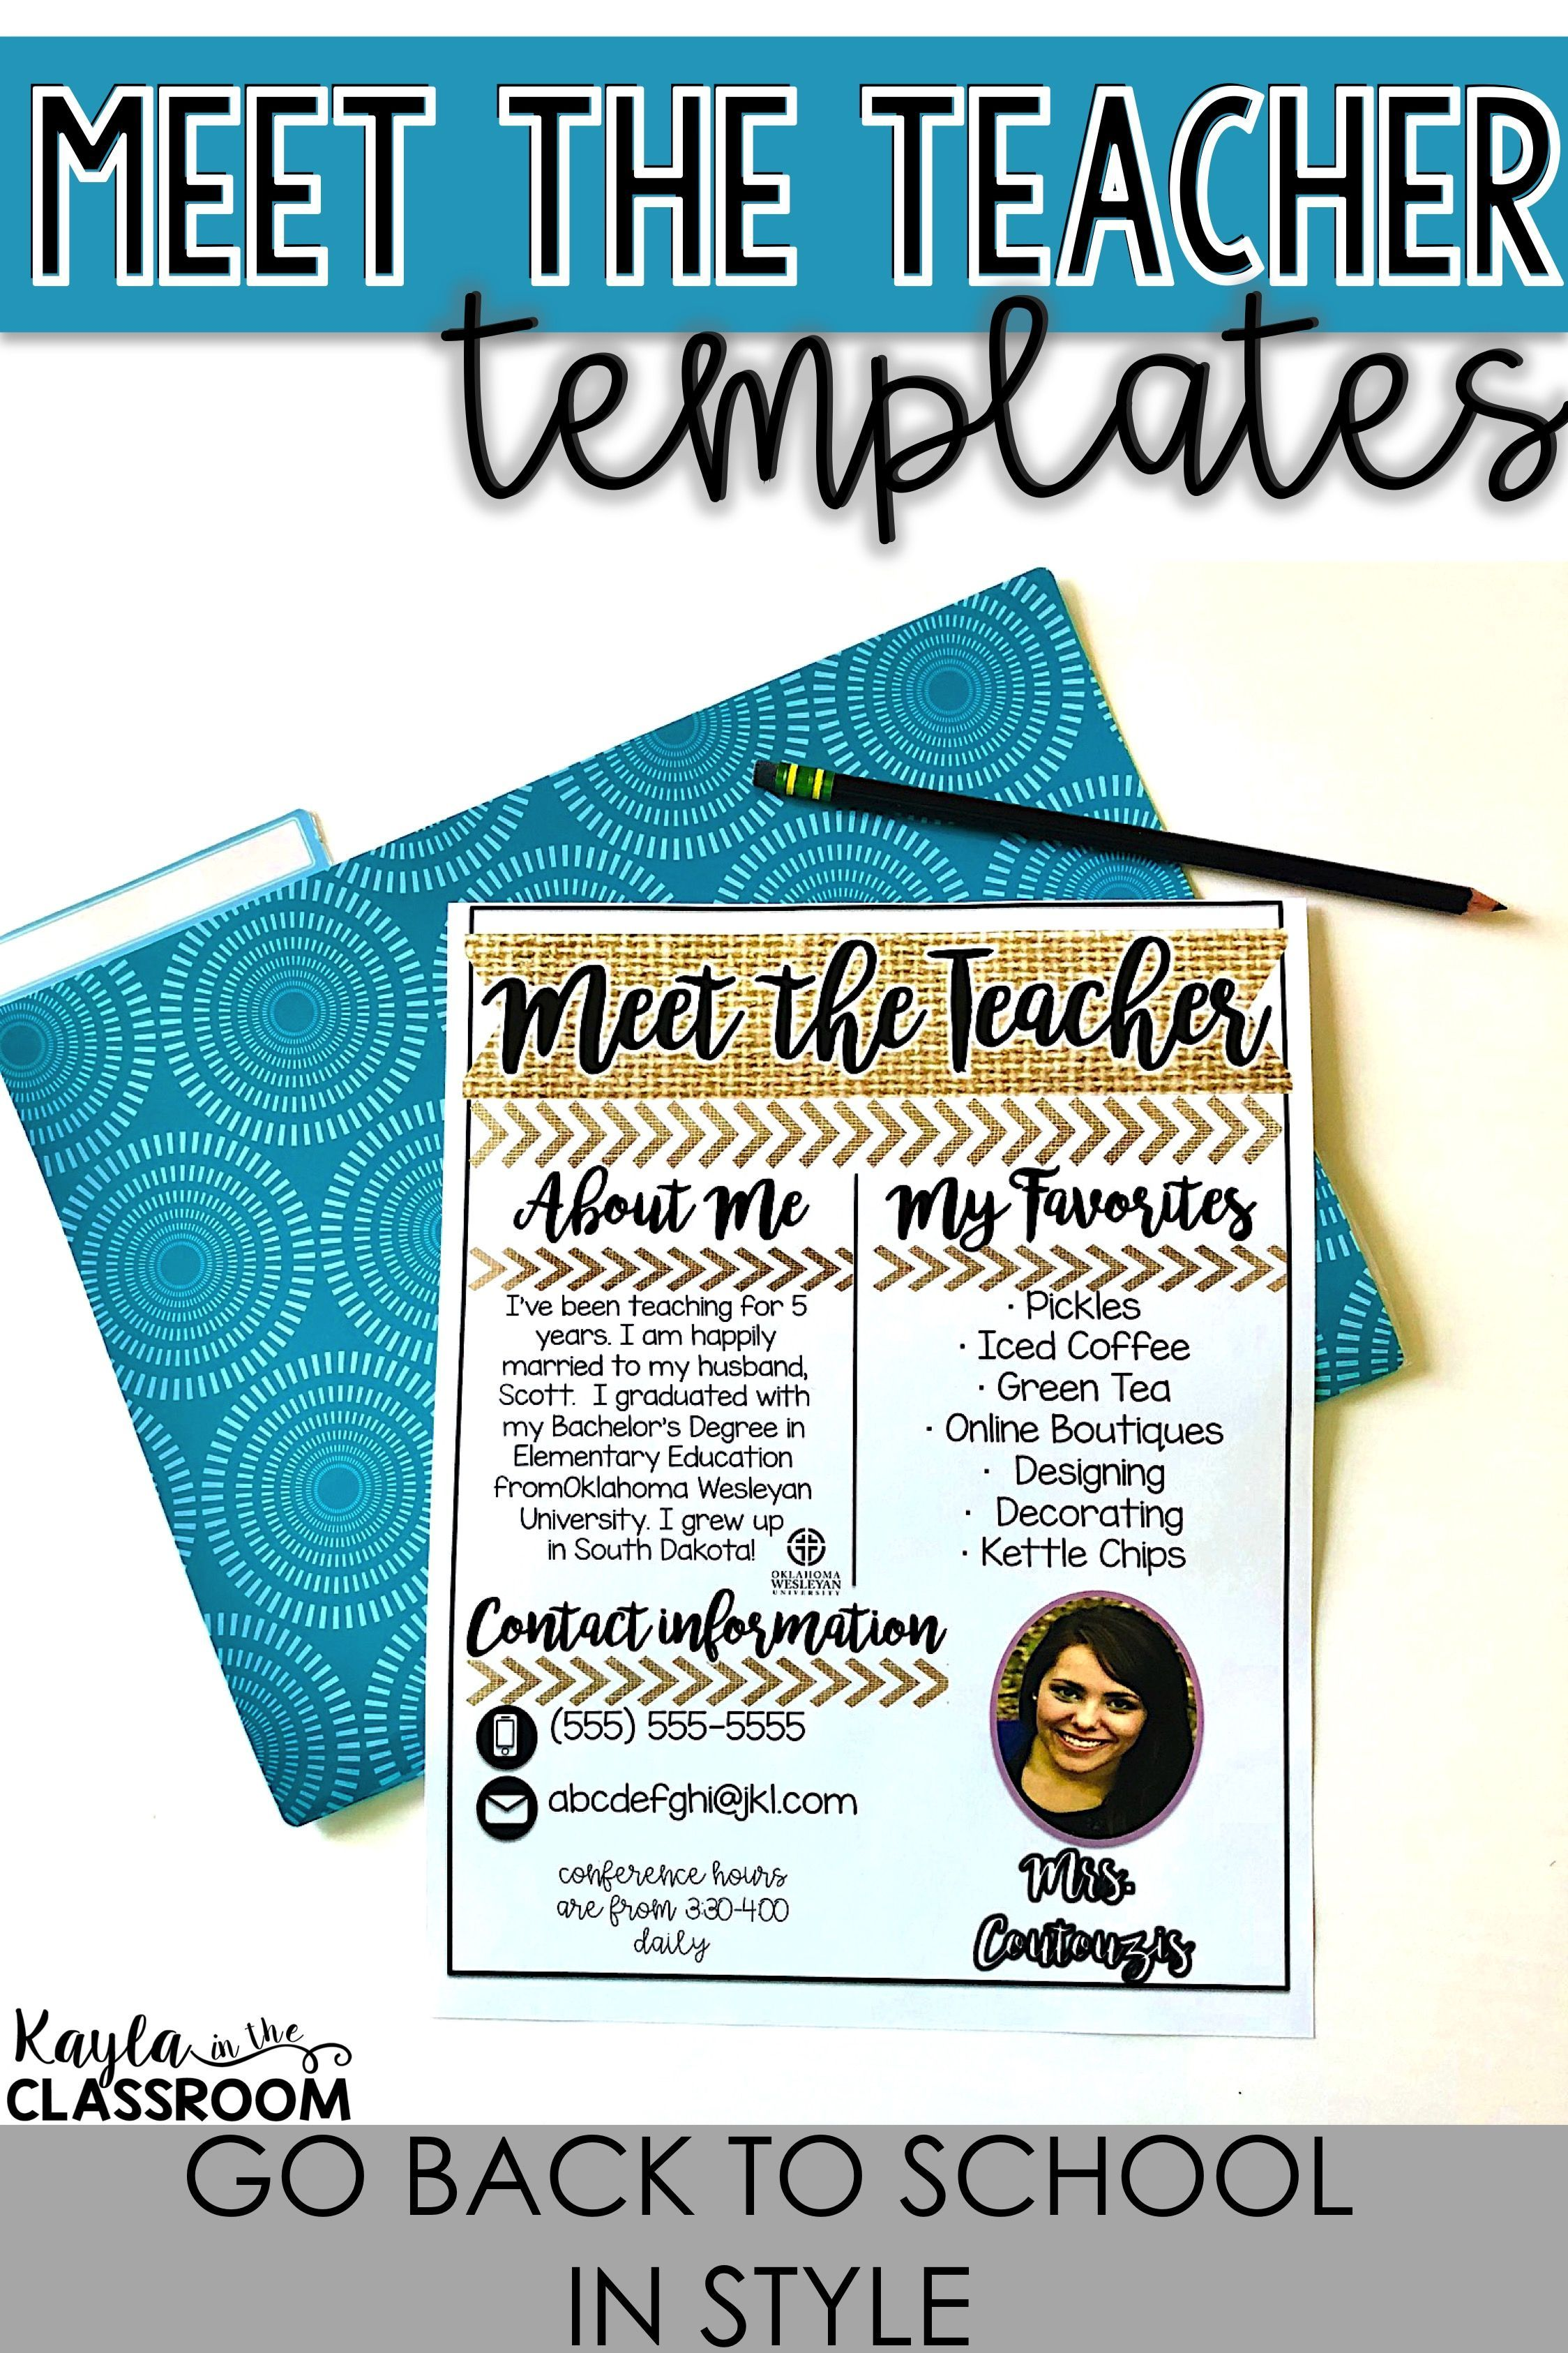 Meet the Teacher Templates Editable #meettheteacherideas Editable Meet the Teacher Templates where you can easily add your own information to introduce yourself to students and parents!  -Meet the Teacher Ideas -Meet the Teacher Night -Meet the Teacher Templates -Meet the Teacher Editable -Meet the Teacher Preschool -Meet the Teacher Kindergarten -Meet the Teacher First Grade -Meet the Teacher Second Grade -Meet the Teacher Third Grade -Meet the Teacher Fourth Grade -Meet the Teacher Letter #meettheteachernight